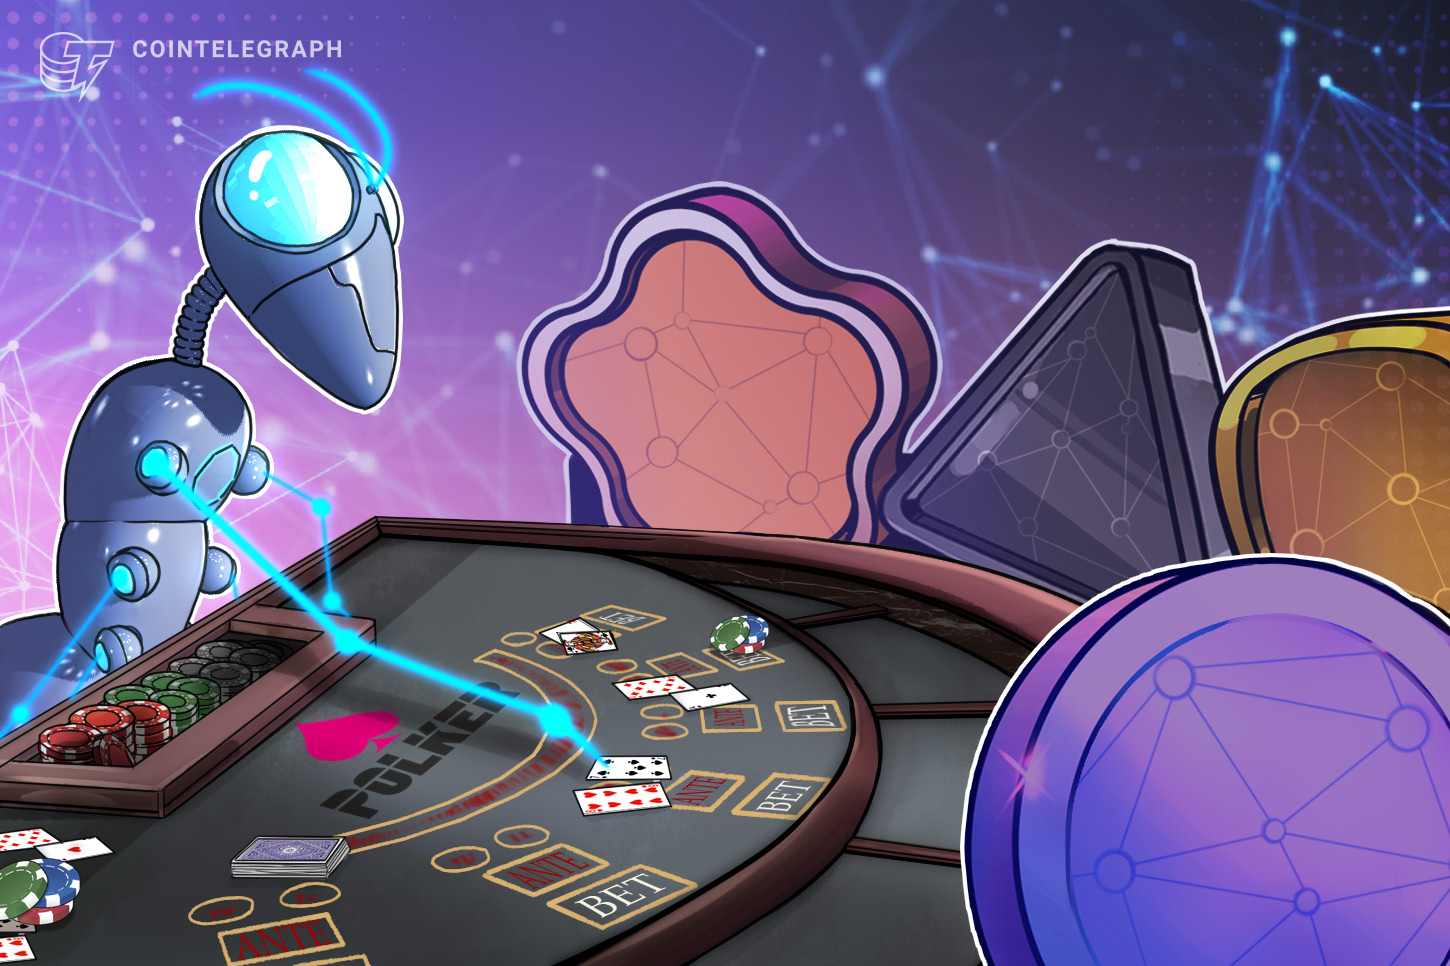 Akon gives the play-to-earn poker platform a shoutout for being the next wave of gaming